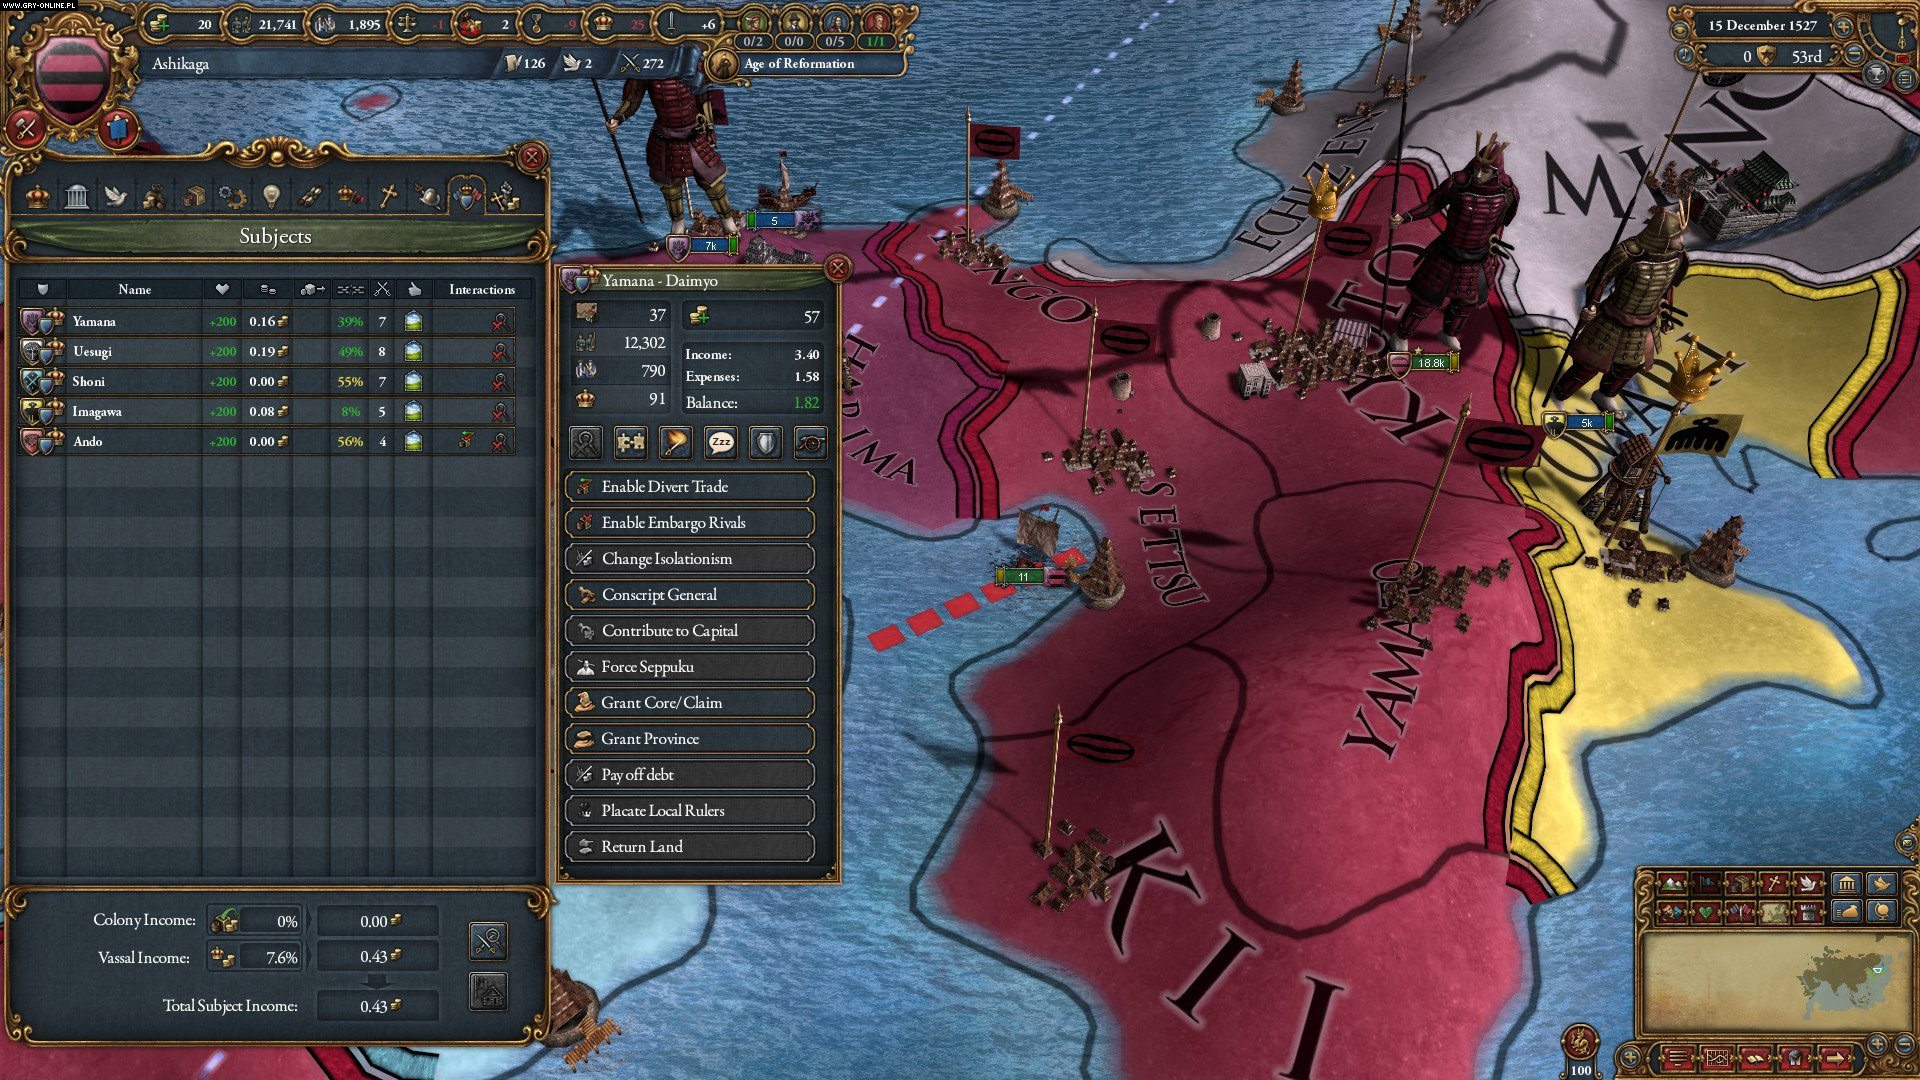 Europa Universalis IV: Mandate of Heaven PC Games Image 7/7, Paradox Development Studio, Paradox Interactive